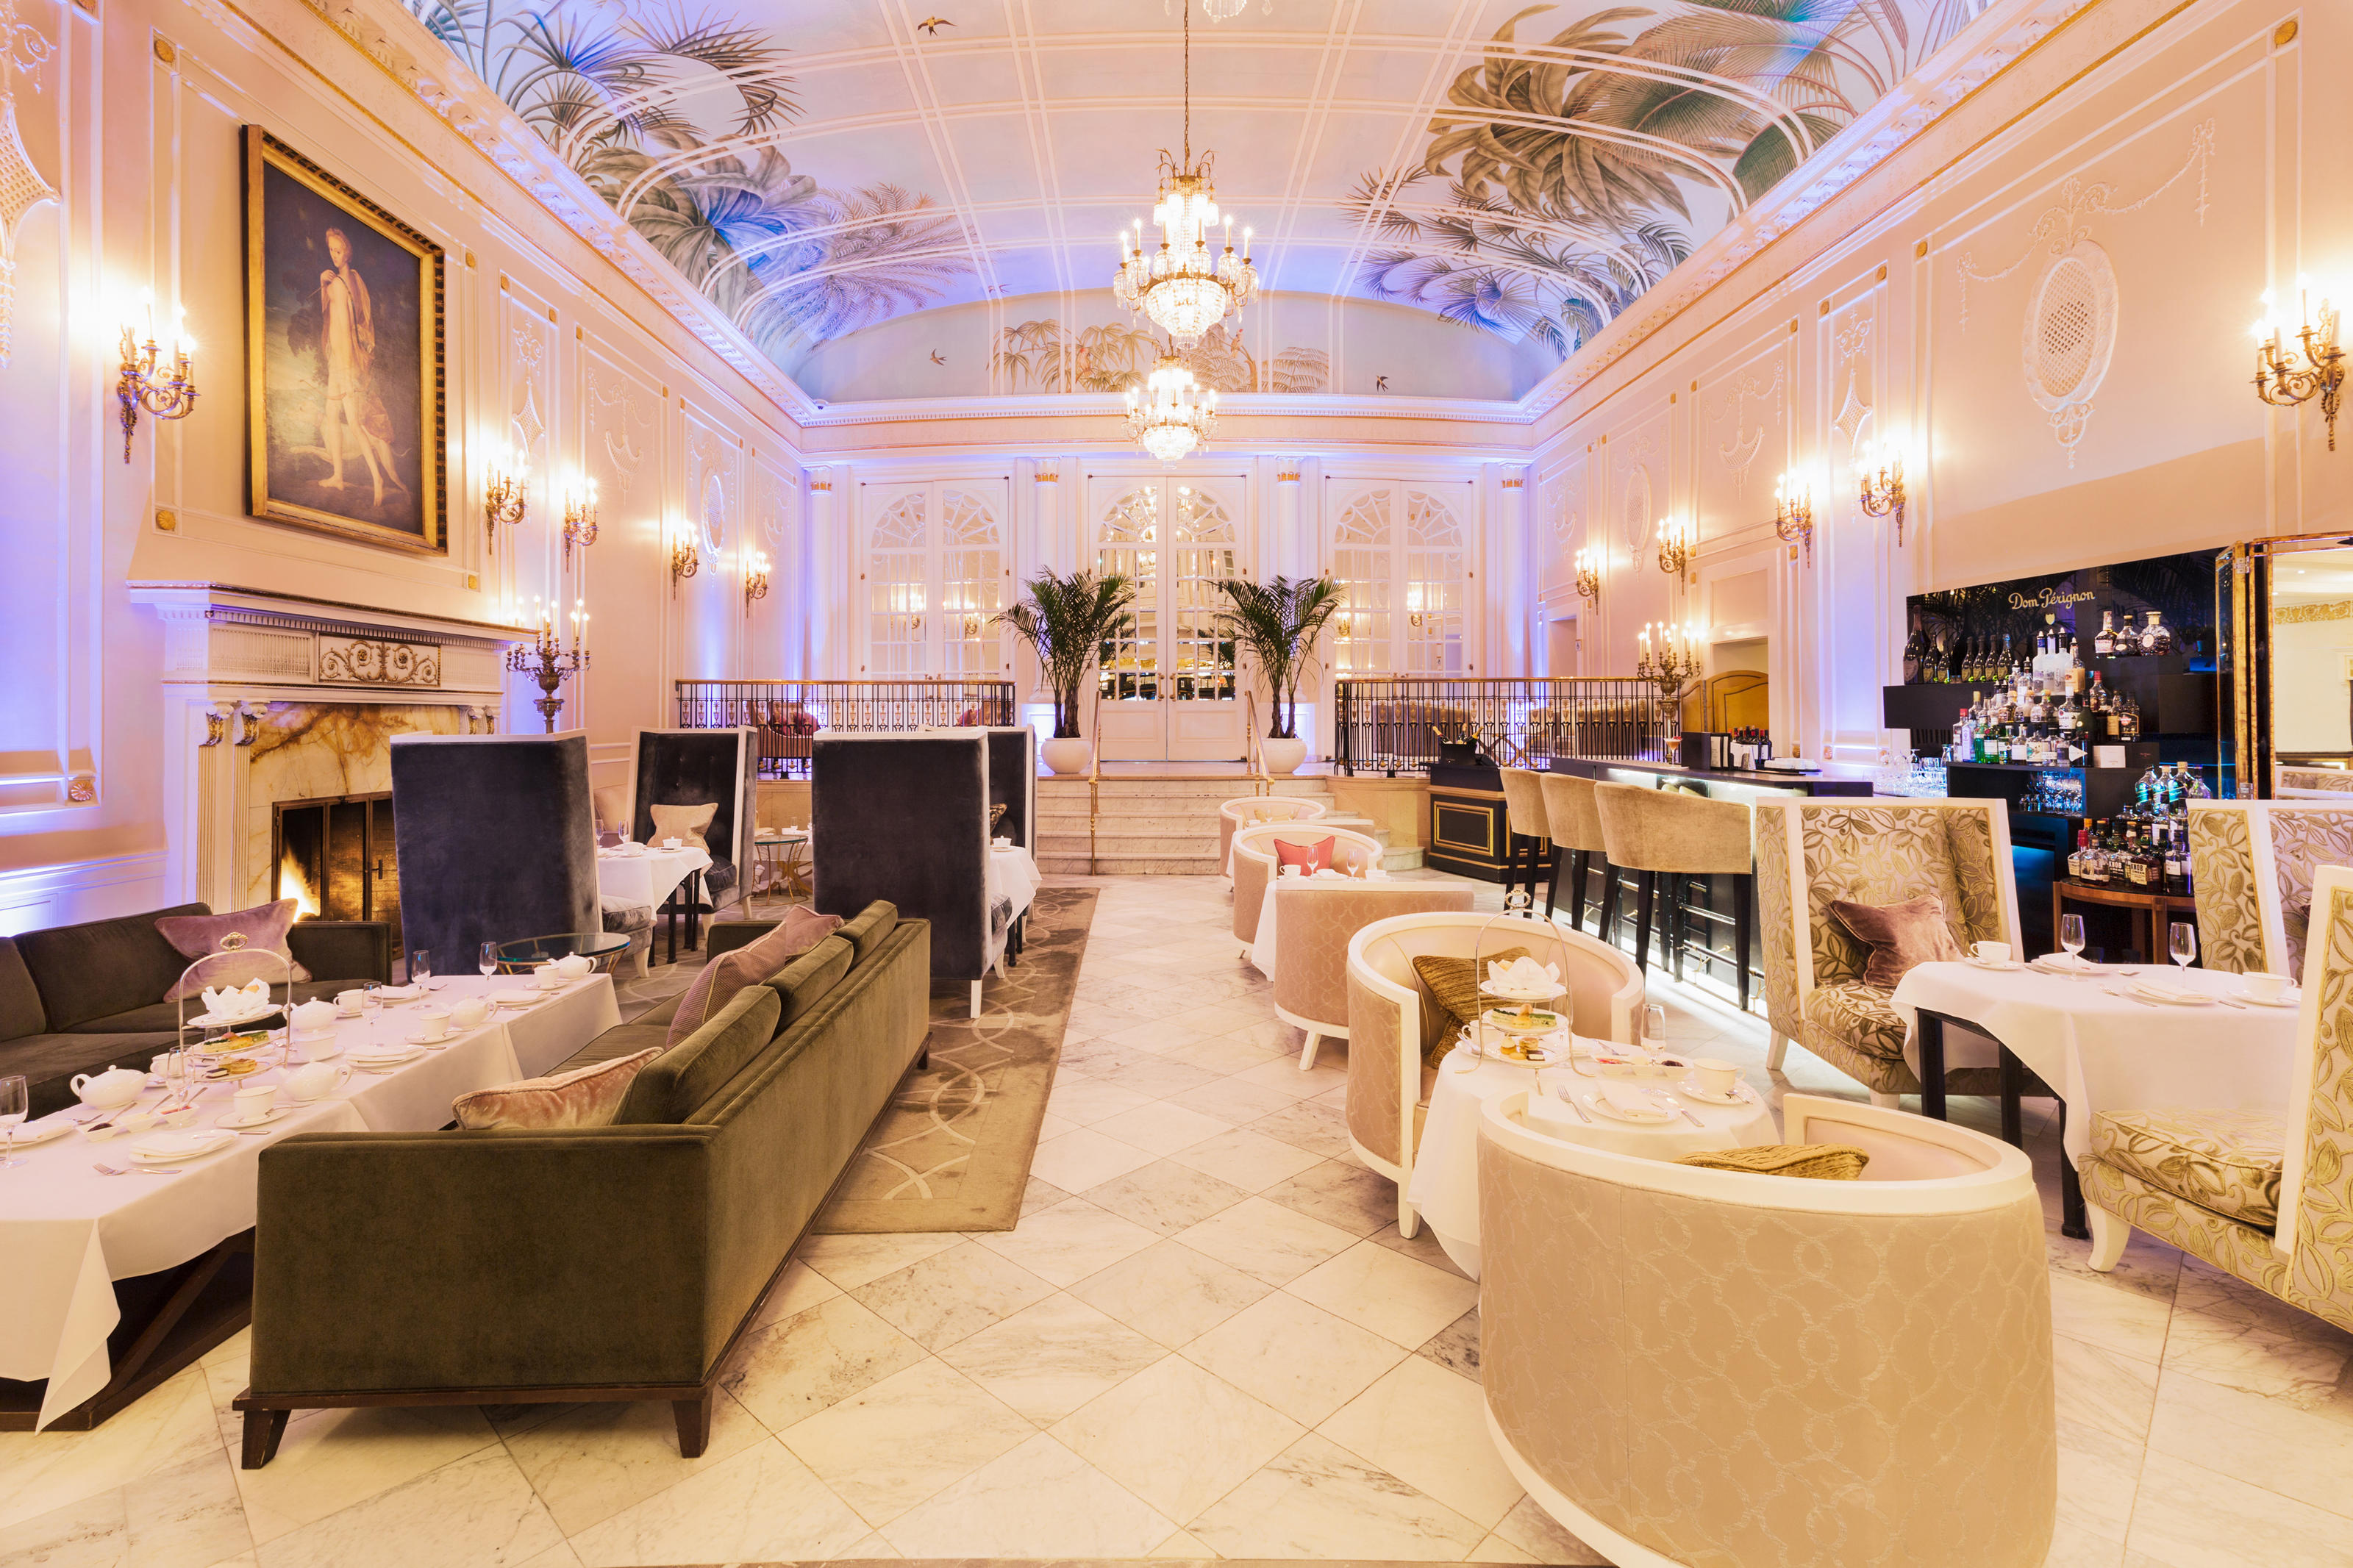 The Ritz-Carlton, Montreal à Montreal: When the Ritz-Carlton Montreal opened in 1912 it became known for its legendary style, impeccable service and tradition for serving afternoon tea and high tea. Today, guests can take tea amidst the elegance of the famous Palm Court, served along with homemade canapés, scones and pastries.